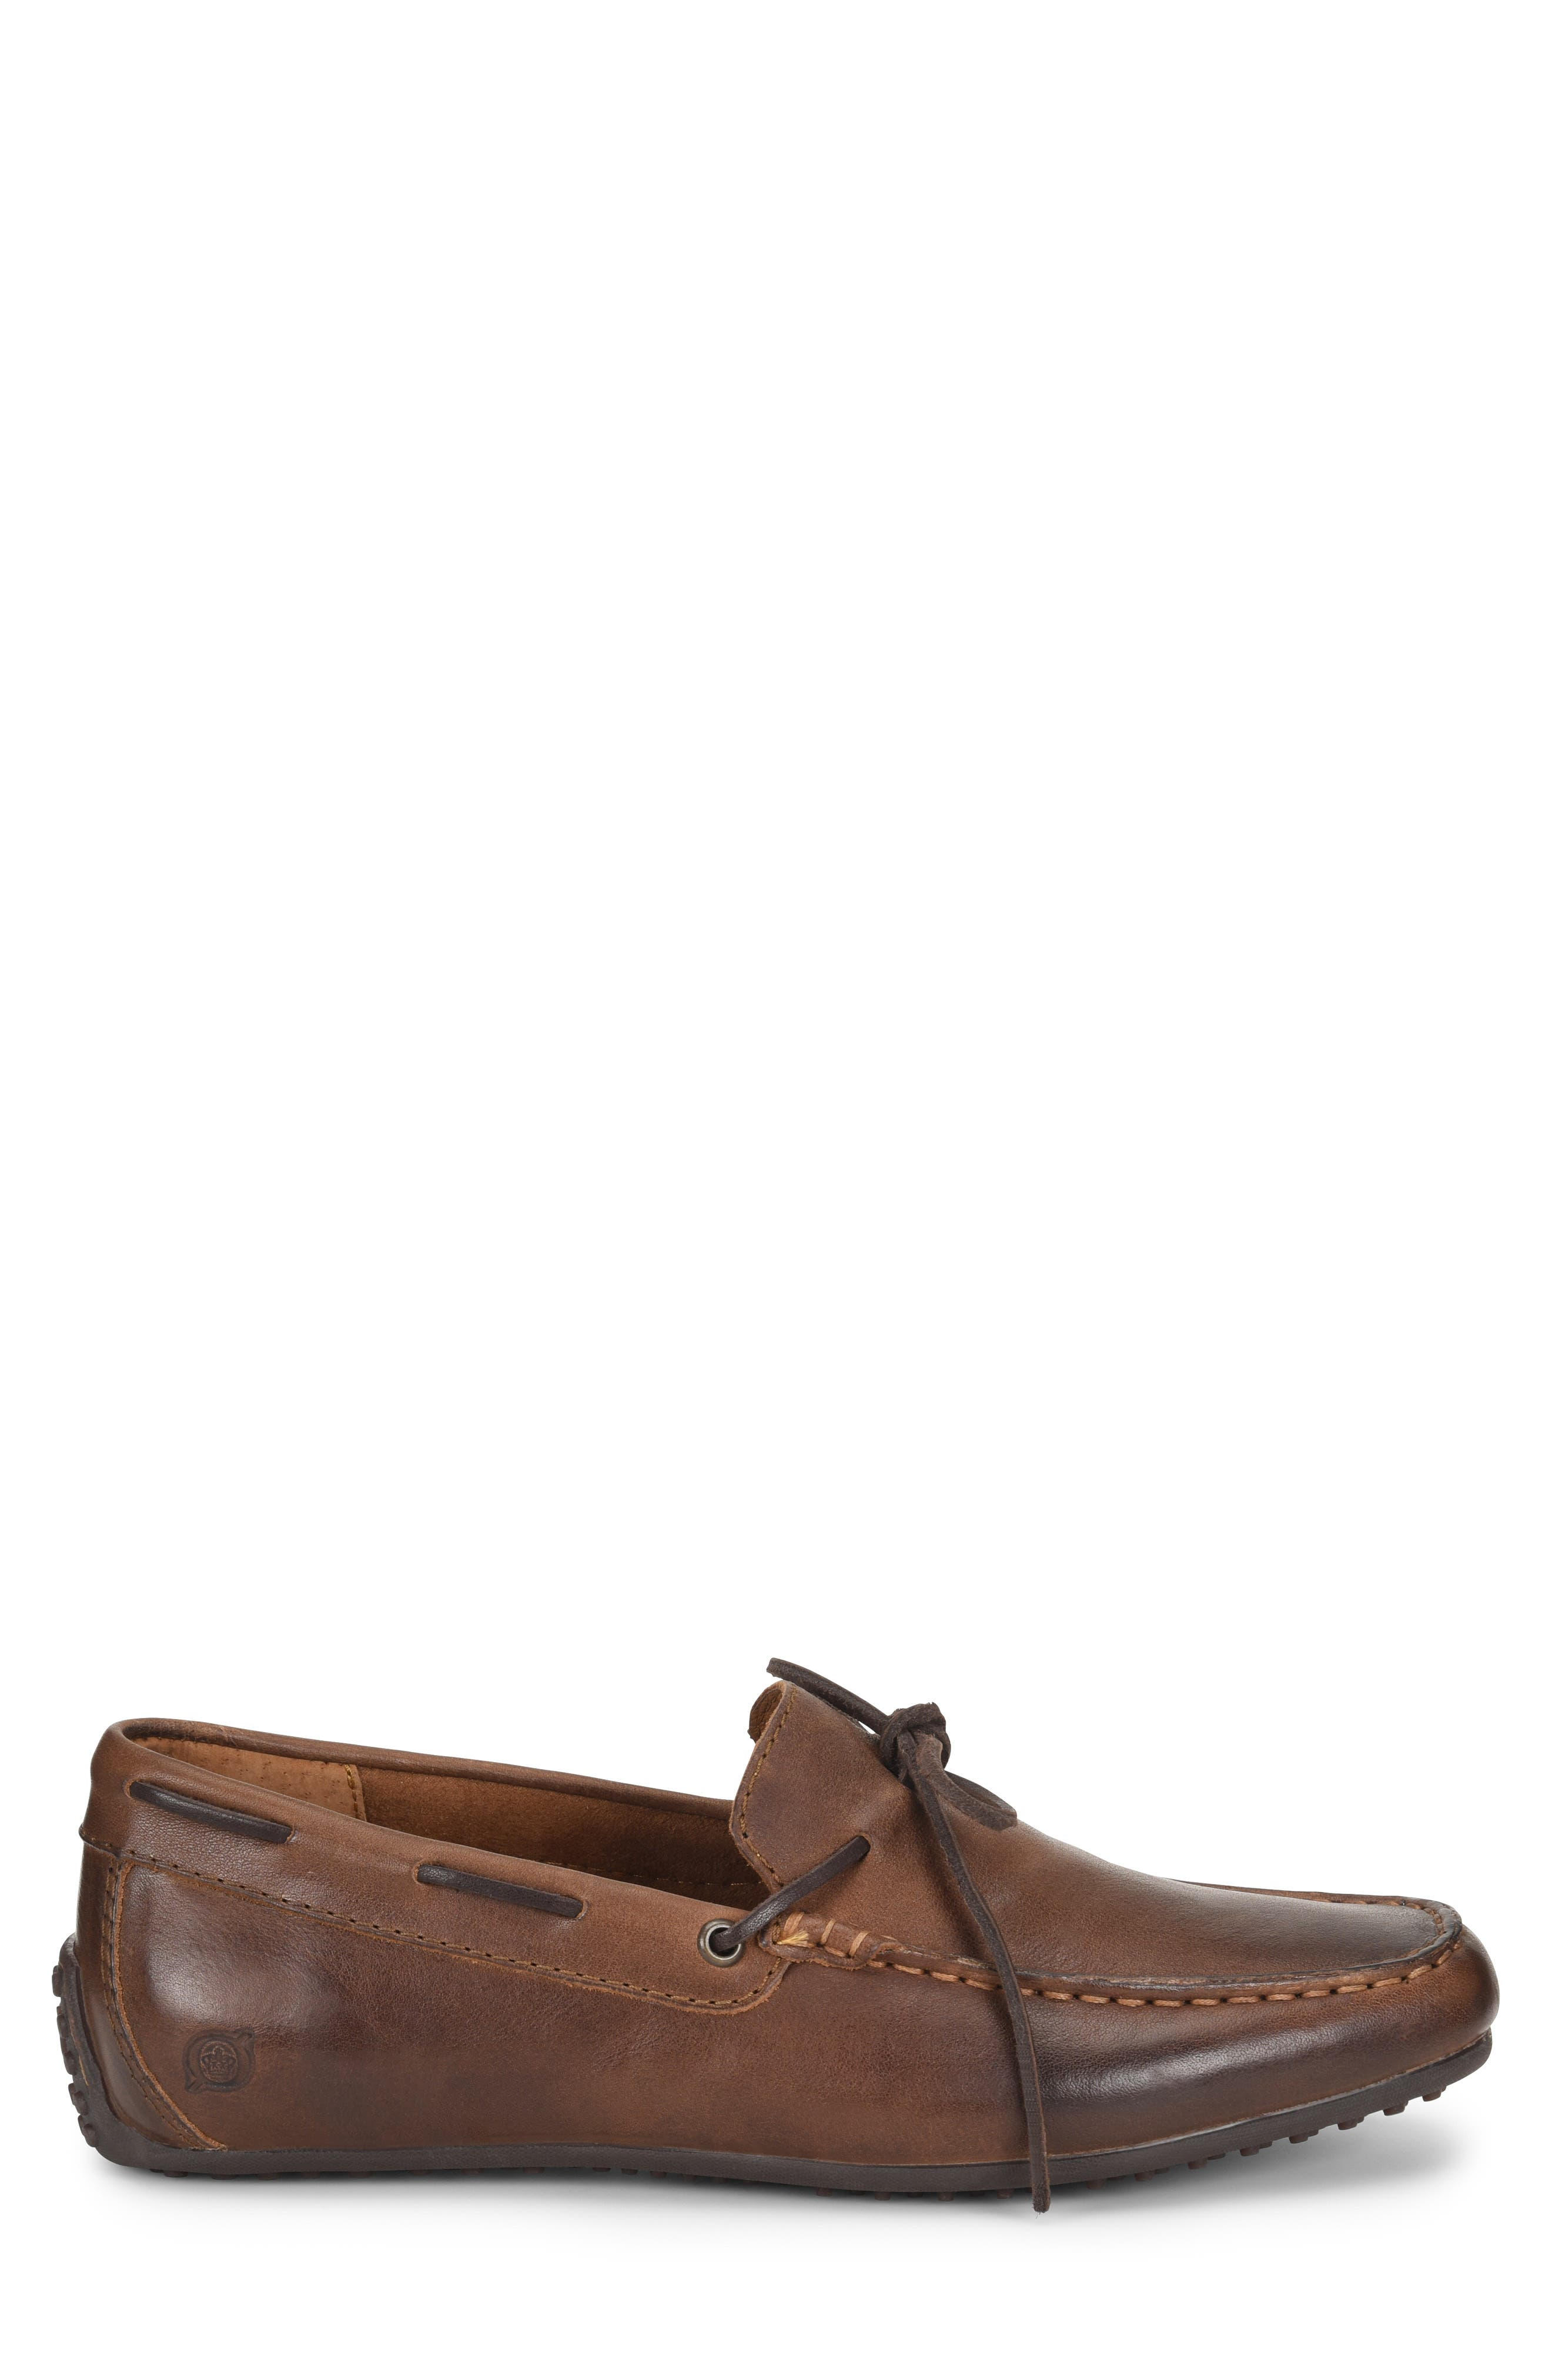 Virgo Driving Shoe,                             Alternate thumbnail 3, color,                             BROWN/BROWN LEATHER